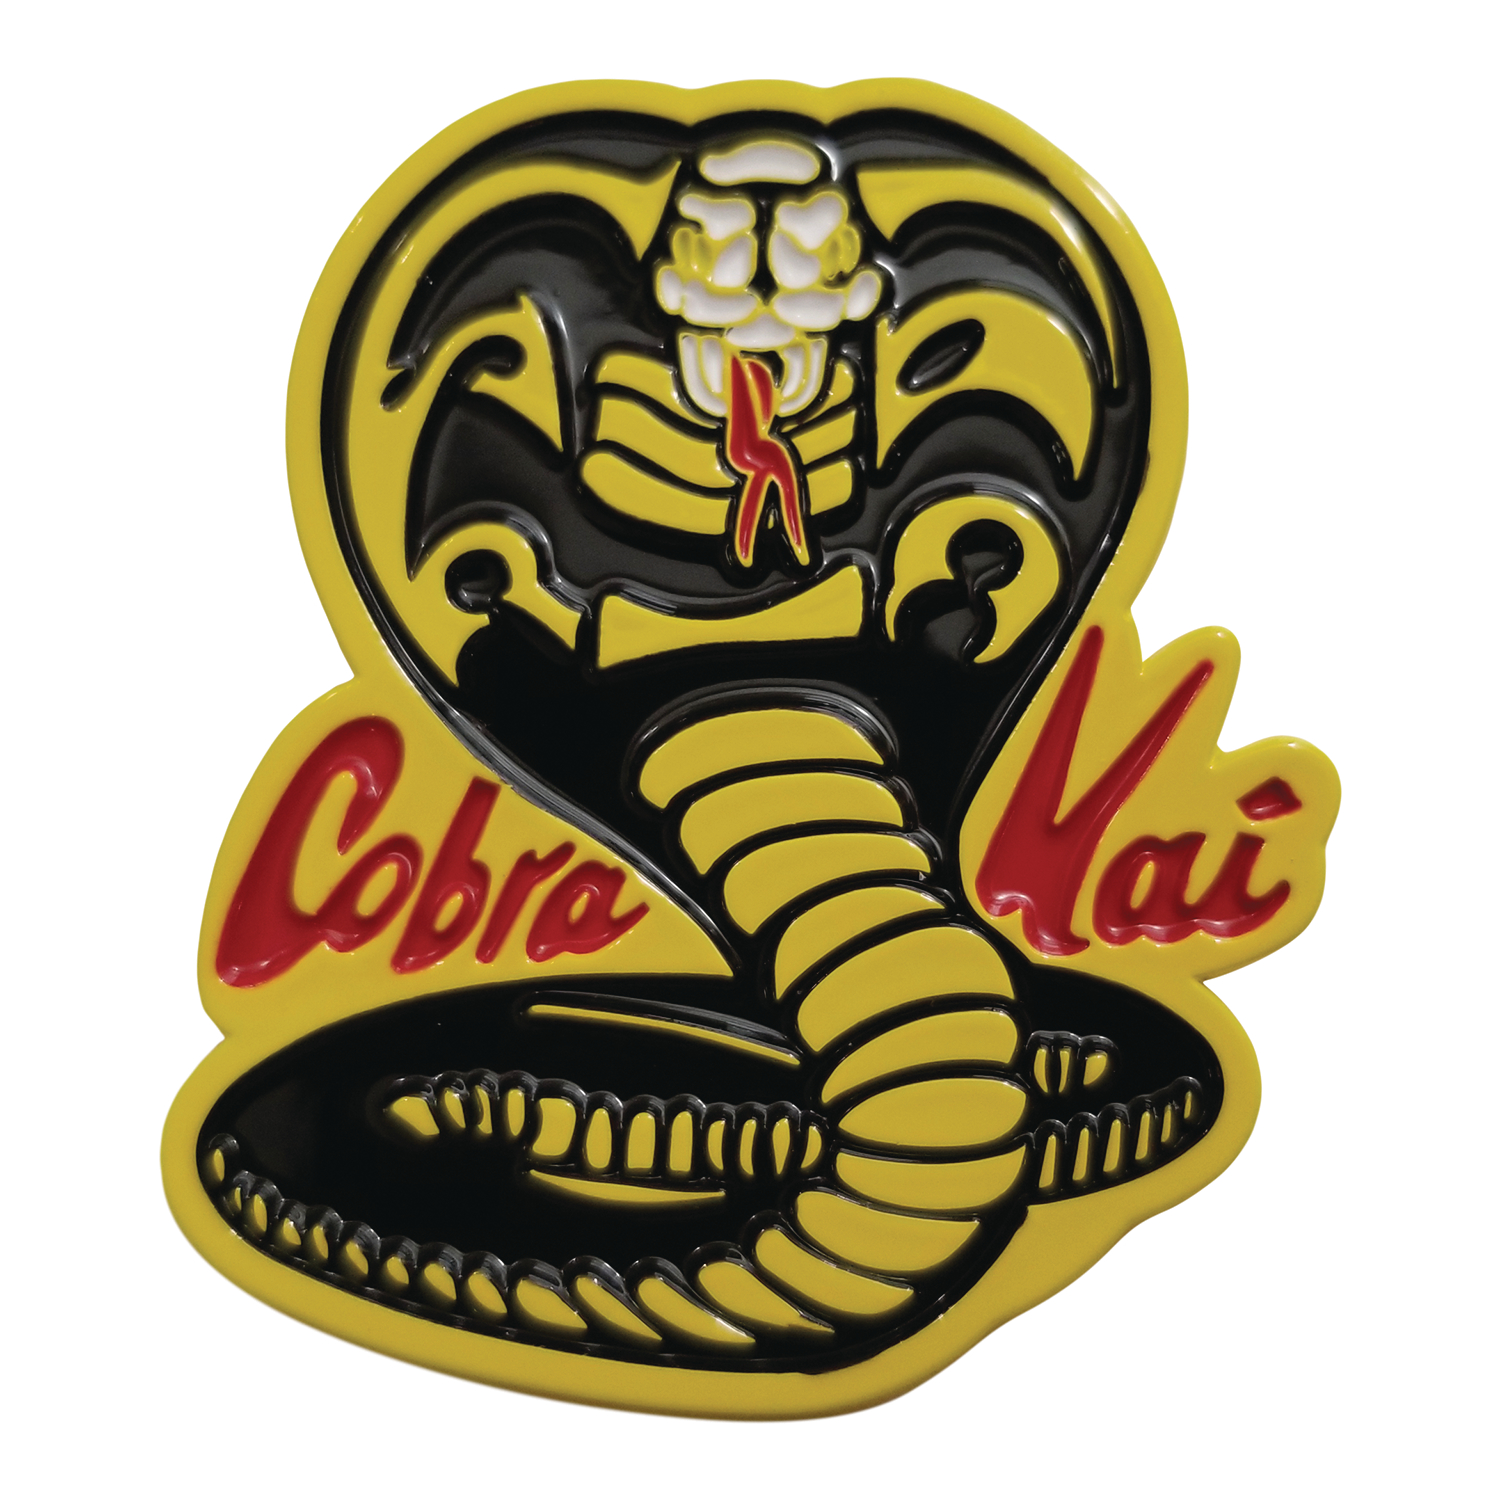 KARATE KID COBRA KAI LOGO ENAMEL PIN